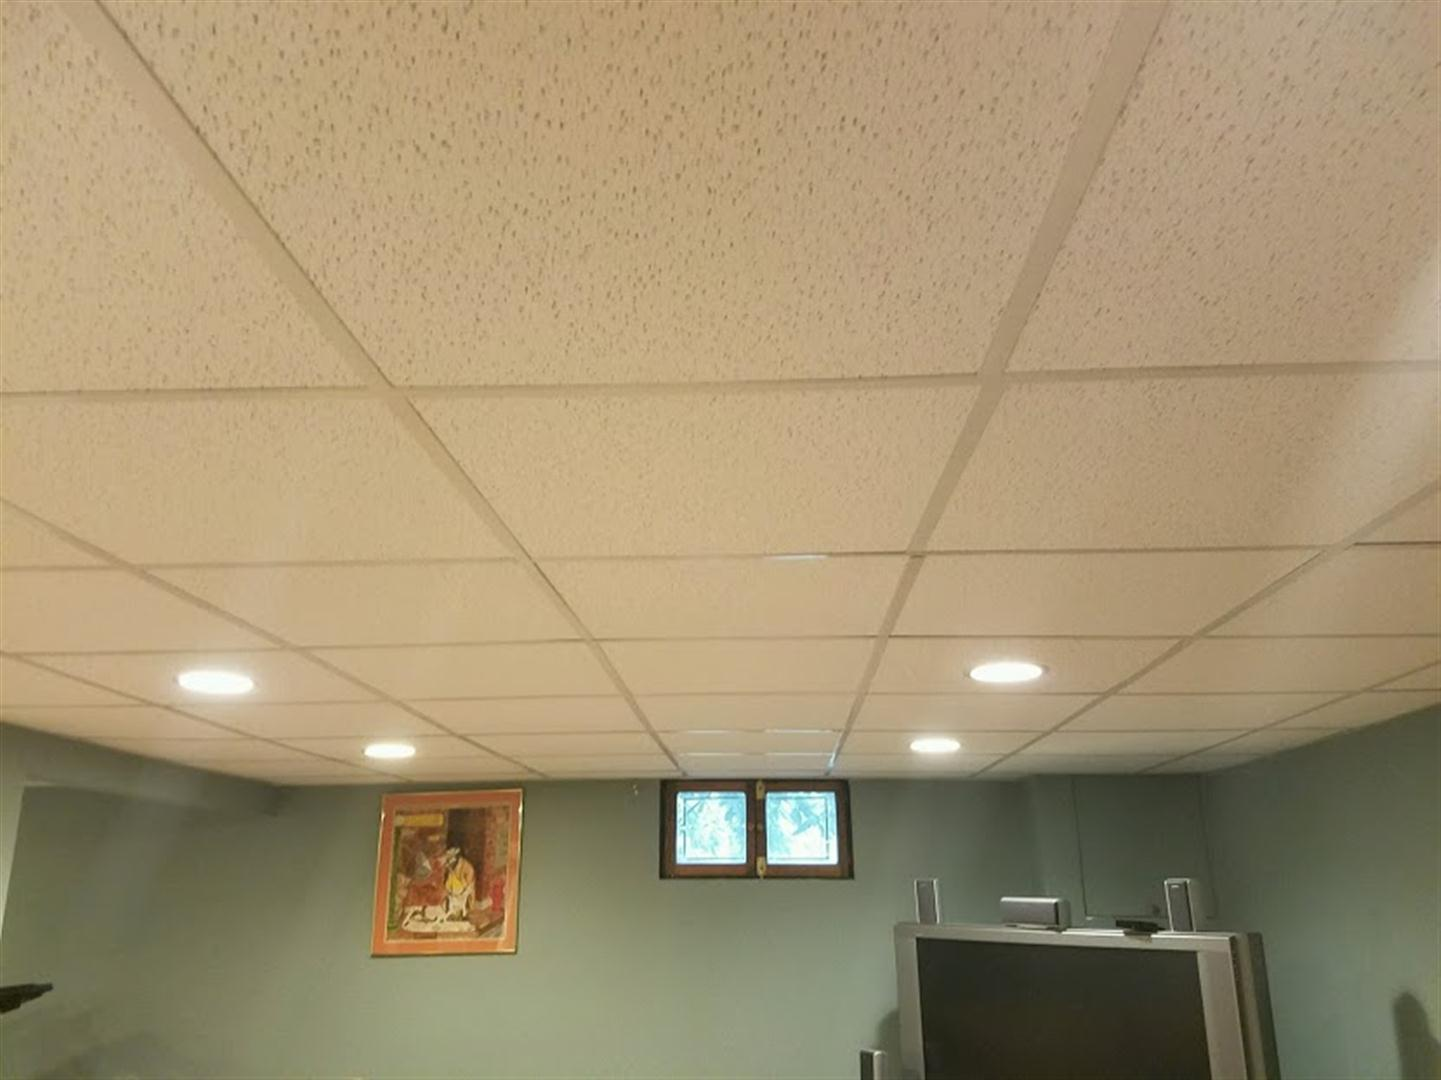 Randolph nj water damage repair mm construction morristown another area of tile installed a section of water damaged ceiling doublecrazyfo Choice Image